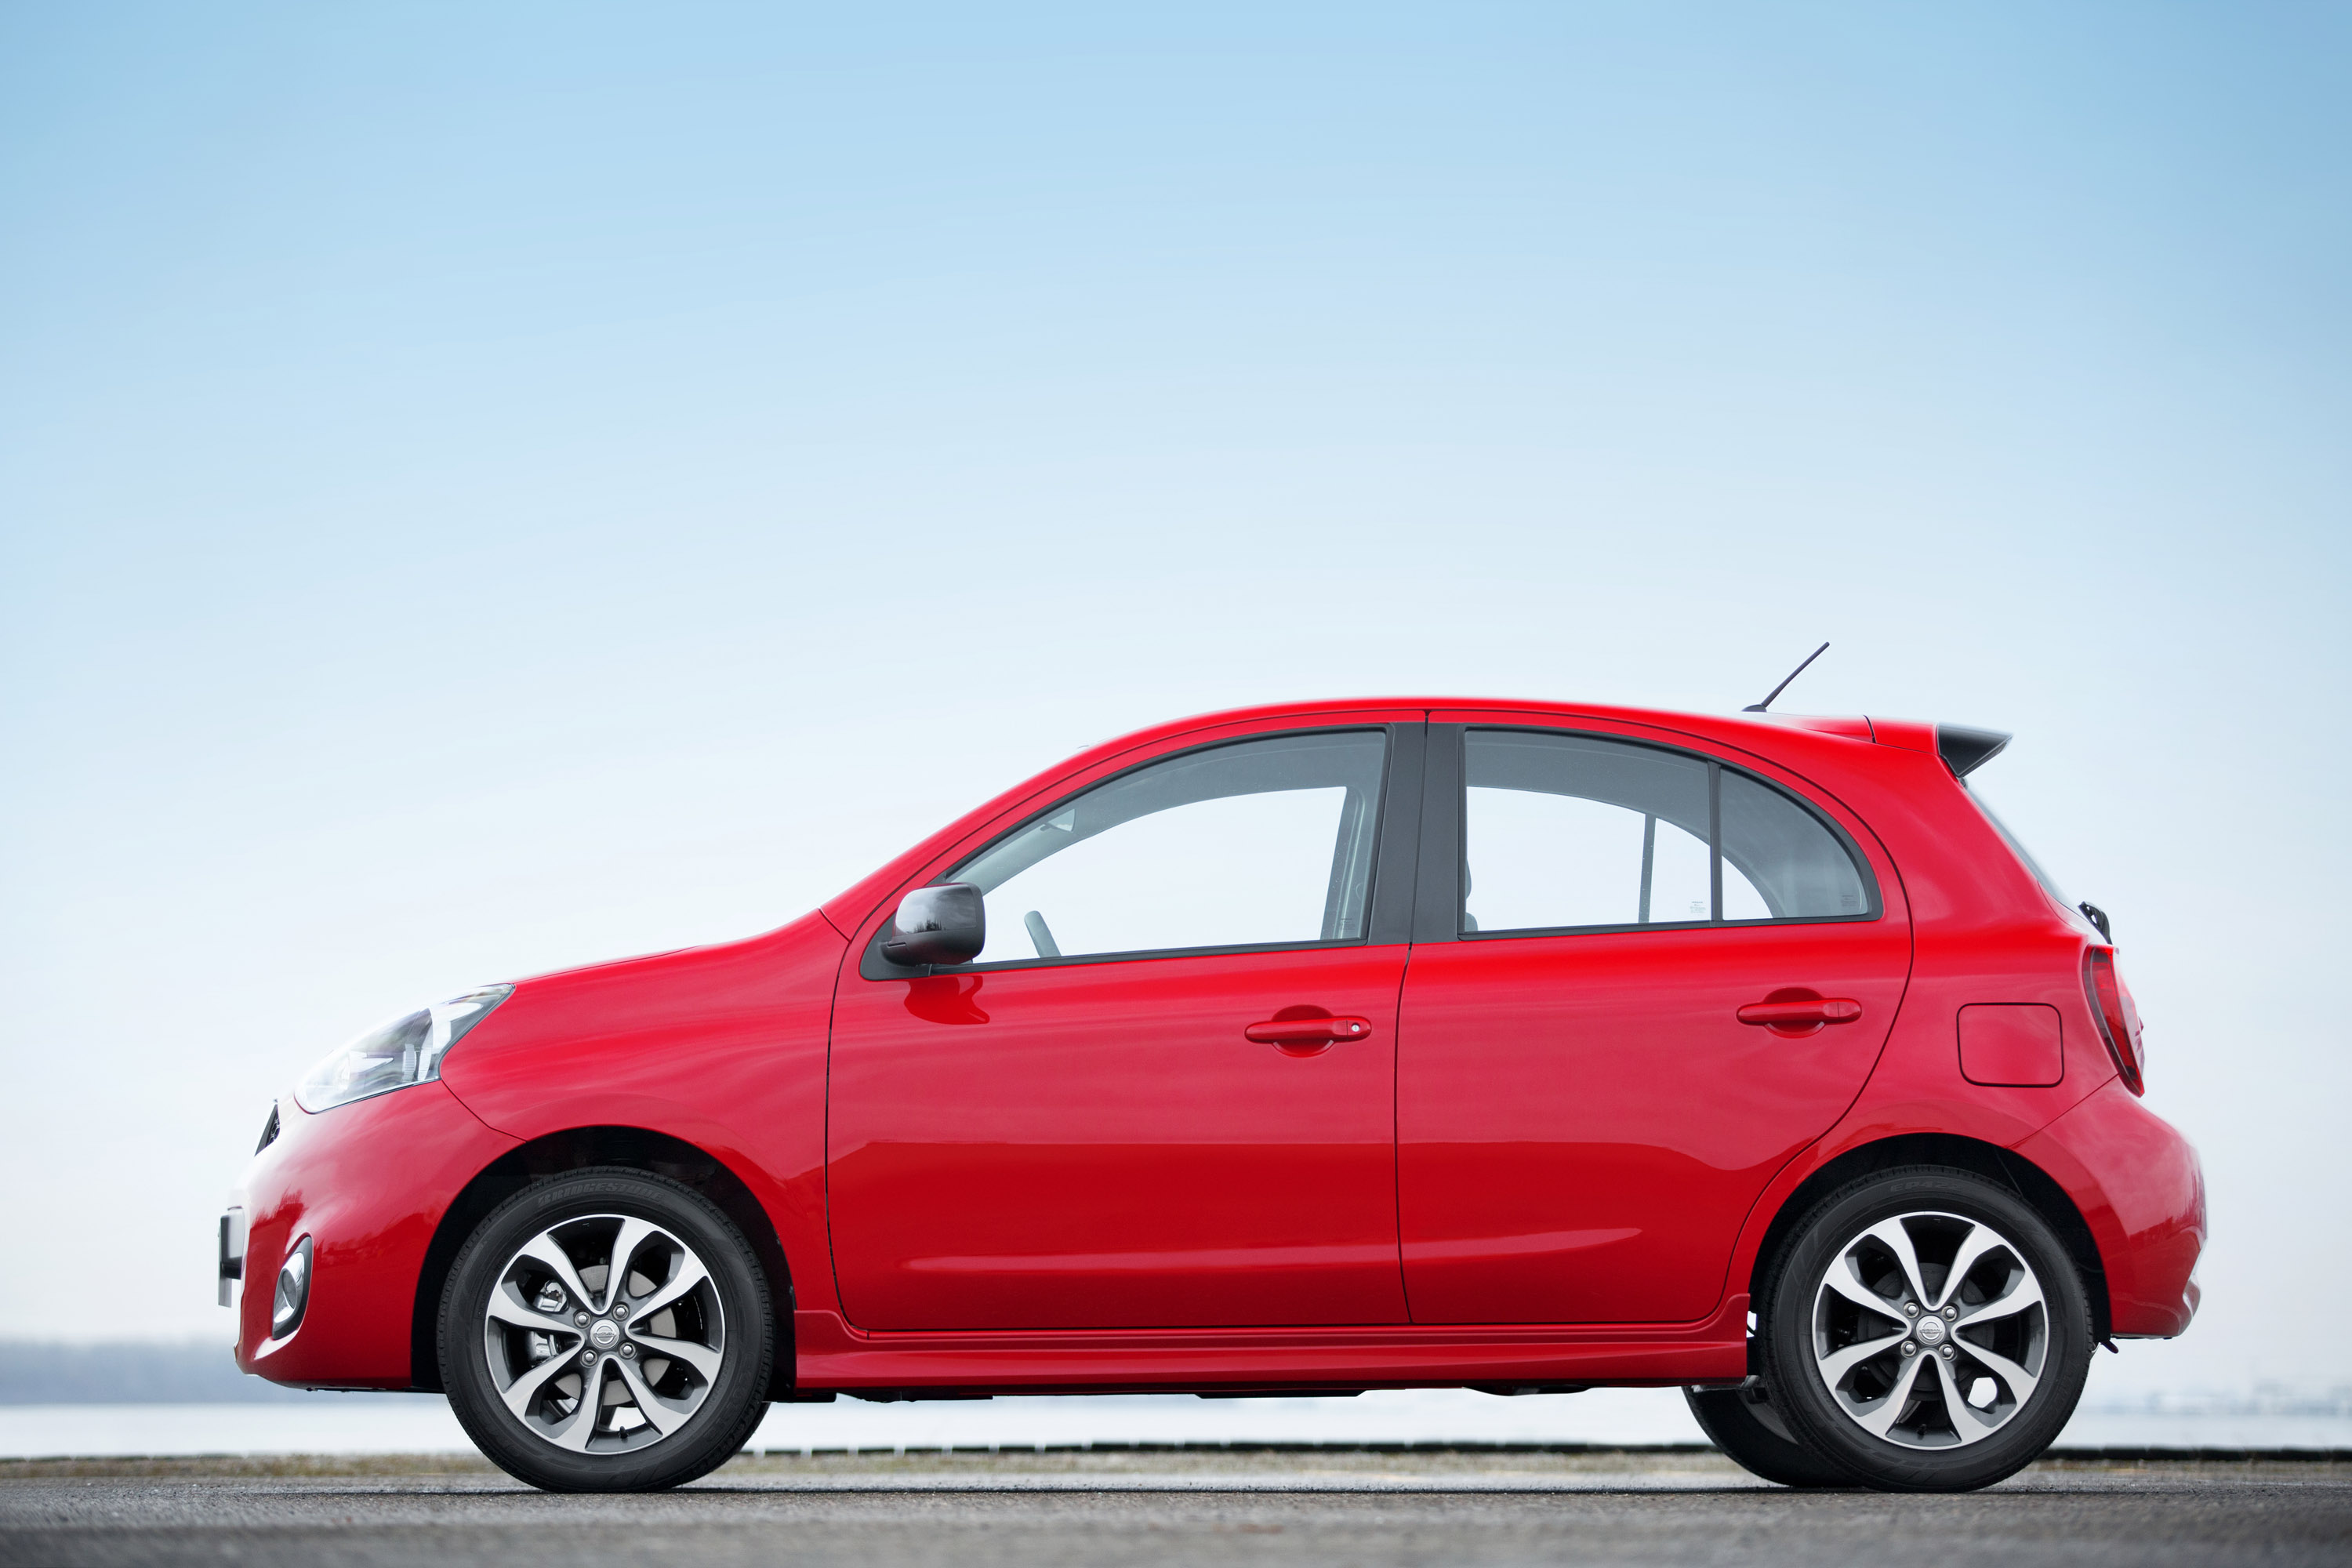 Micra automatic price in bangalore dating 6